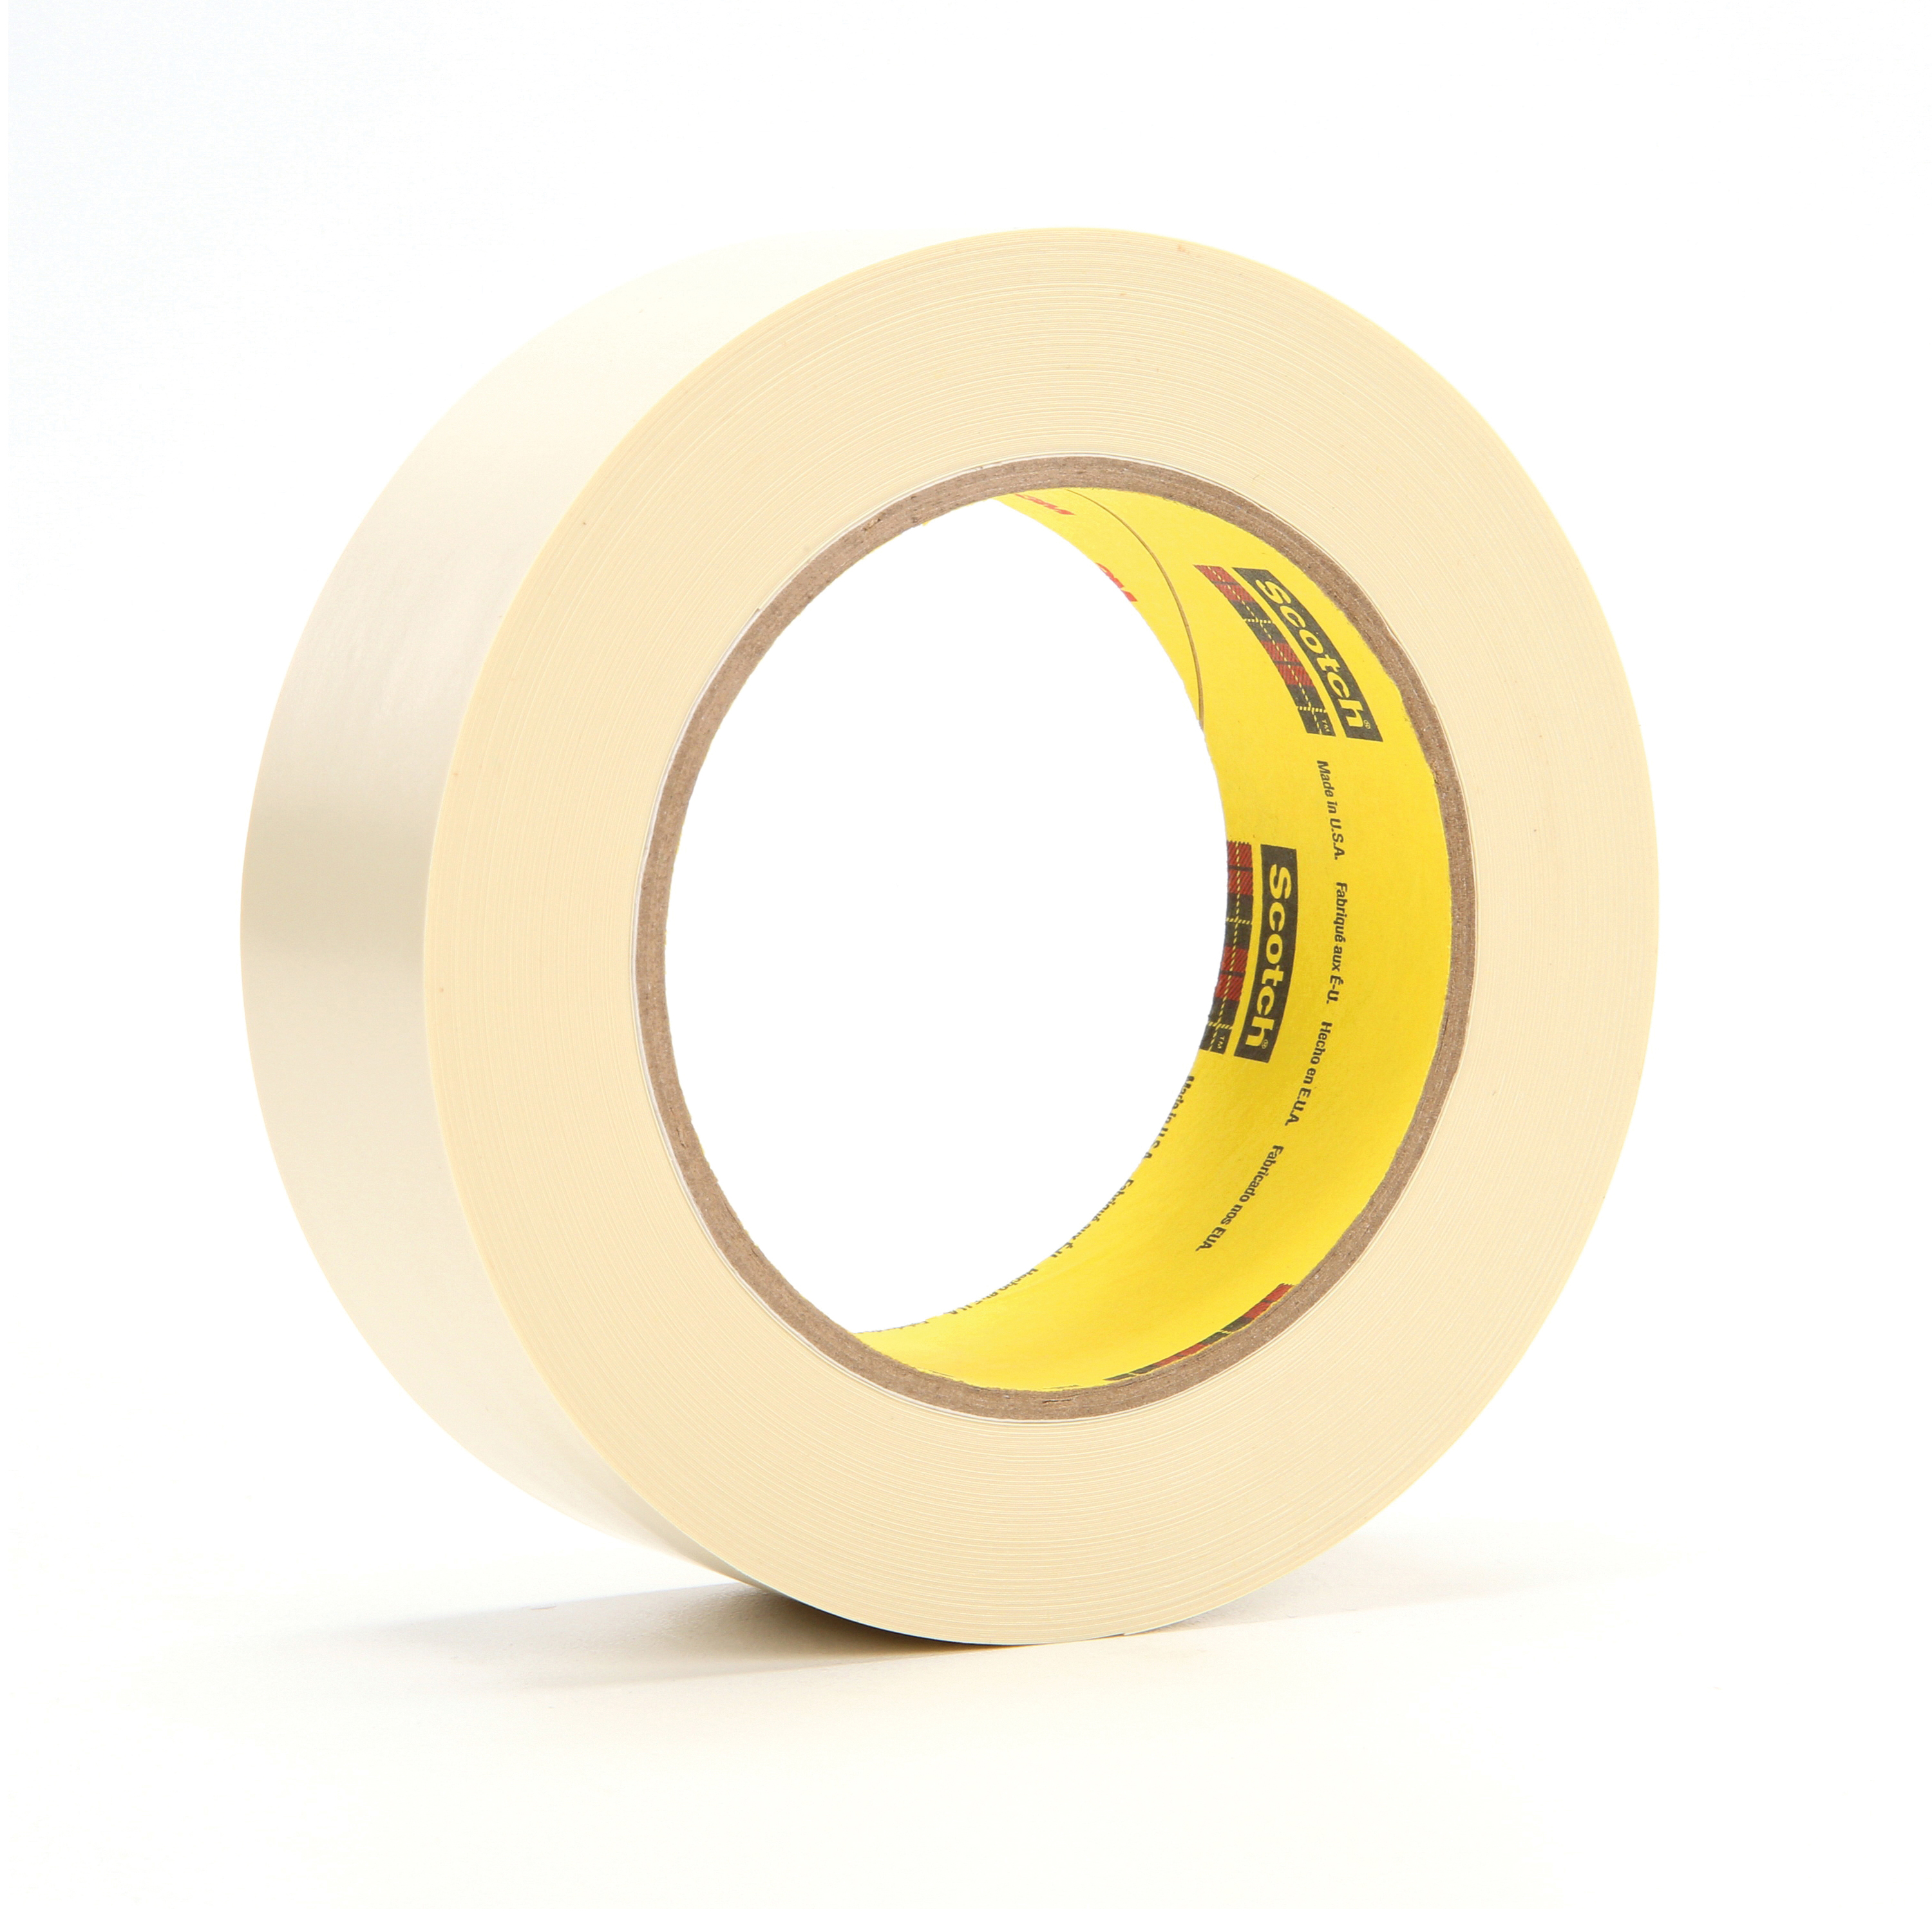 3M™ 021200-86147 Electroplating Tape, 36 yd L x 1-1/2 in W, 7.1 mil THK, Rubber Adhesive, Vinyl Backing